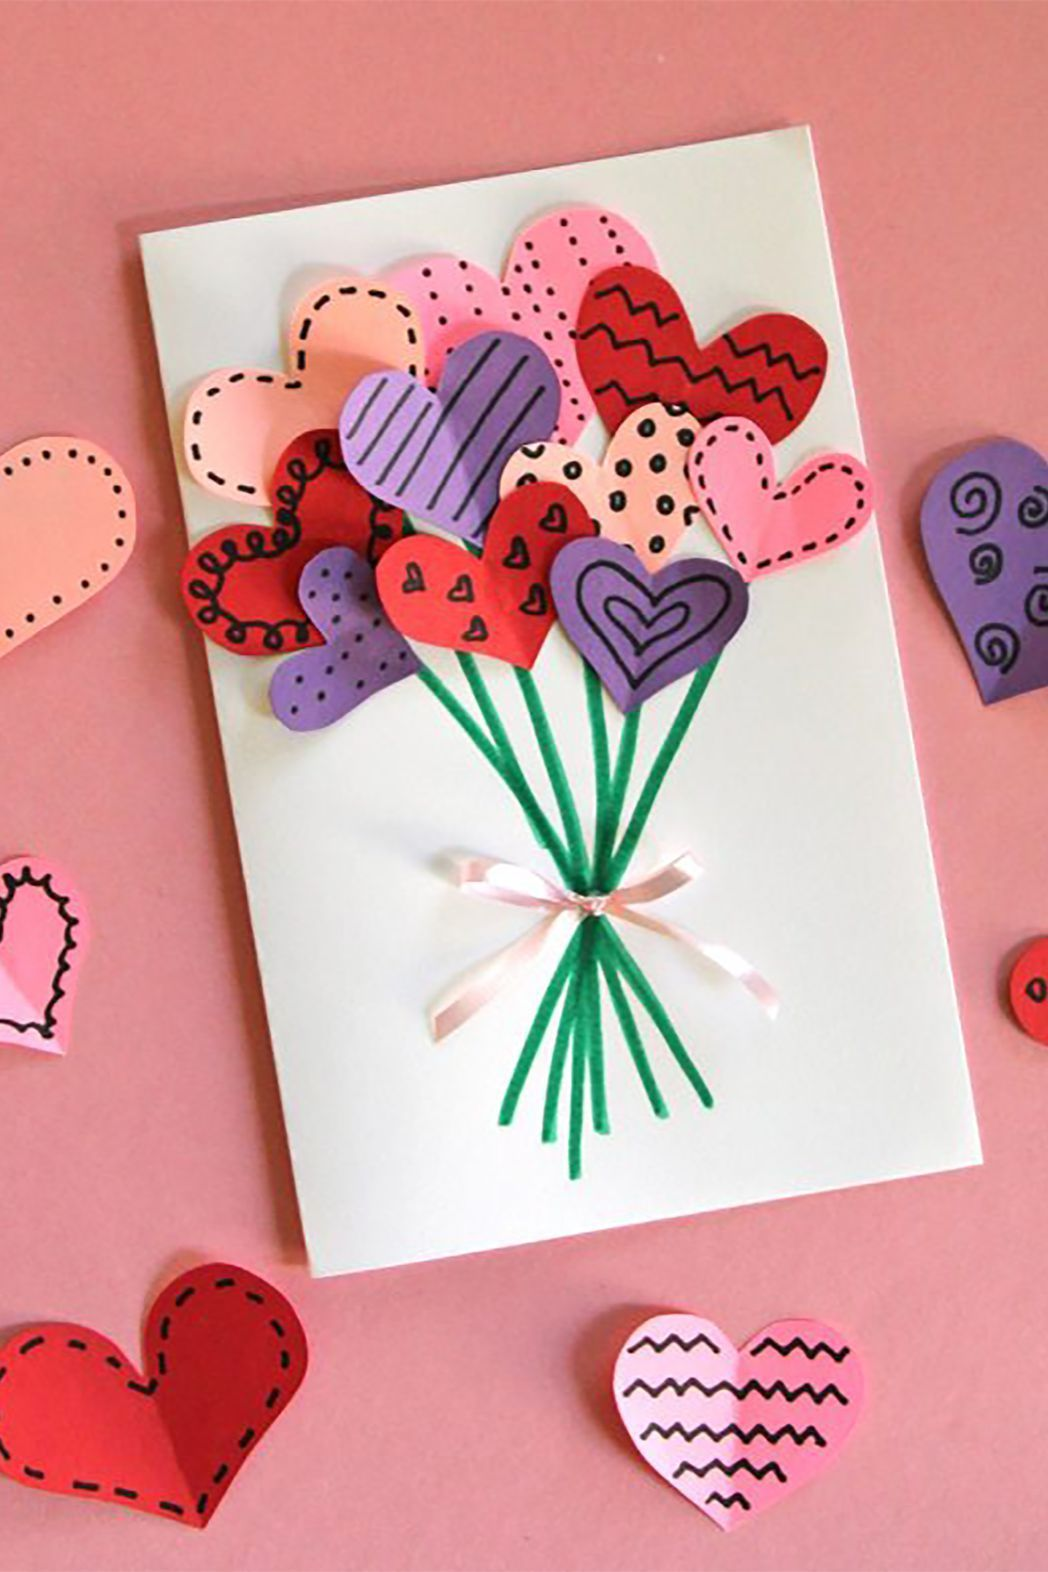 Show Someone How Much You Care with These Sweet DIY Valentine's Day Cards - Derin&Mother'sDay